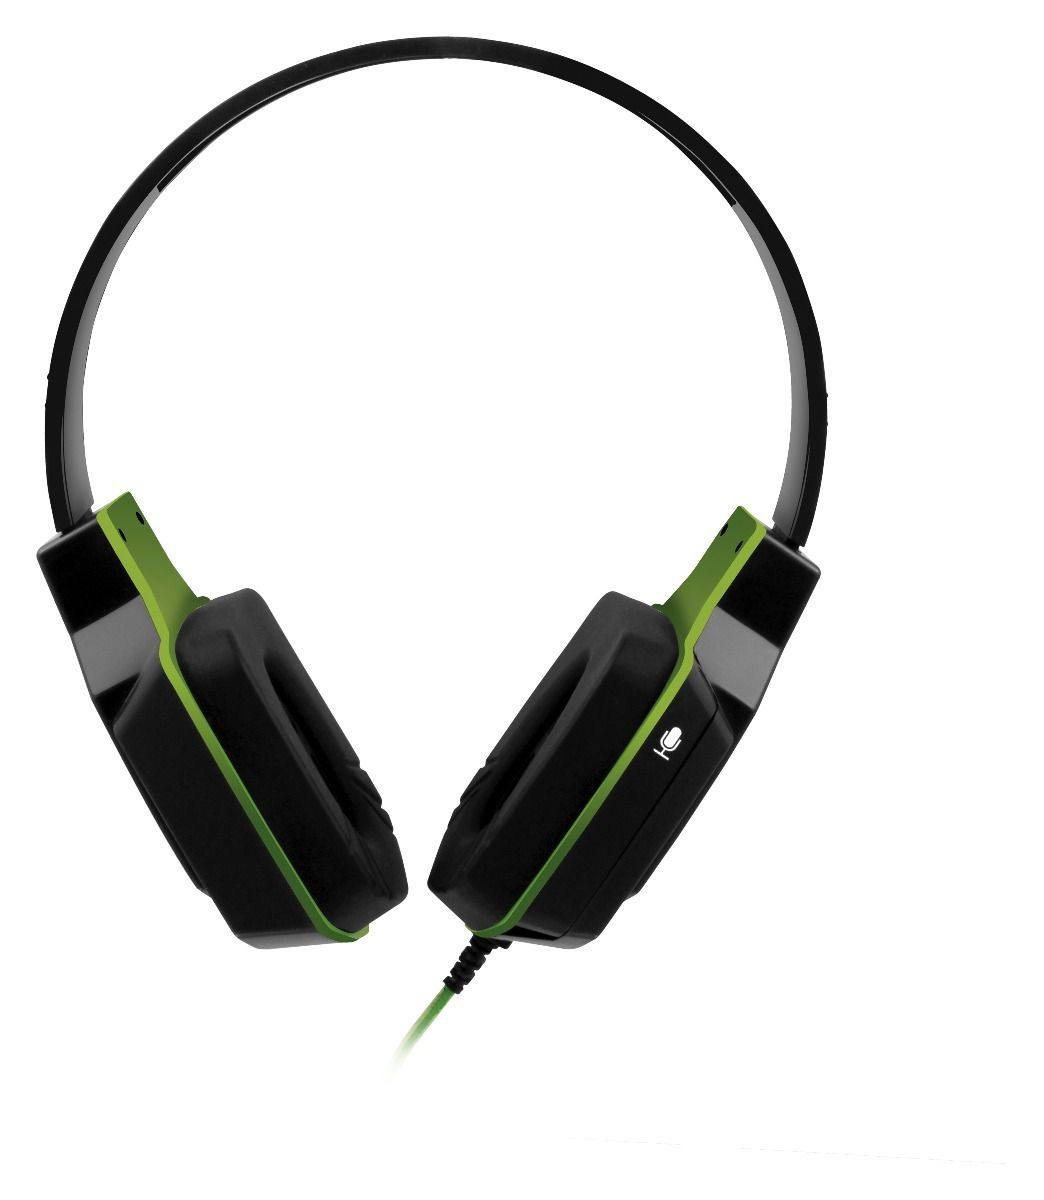 ph146 Headset Gamer Multilaser|Foneland